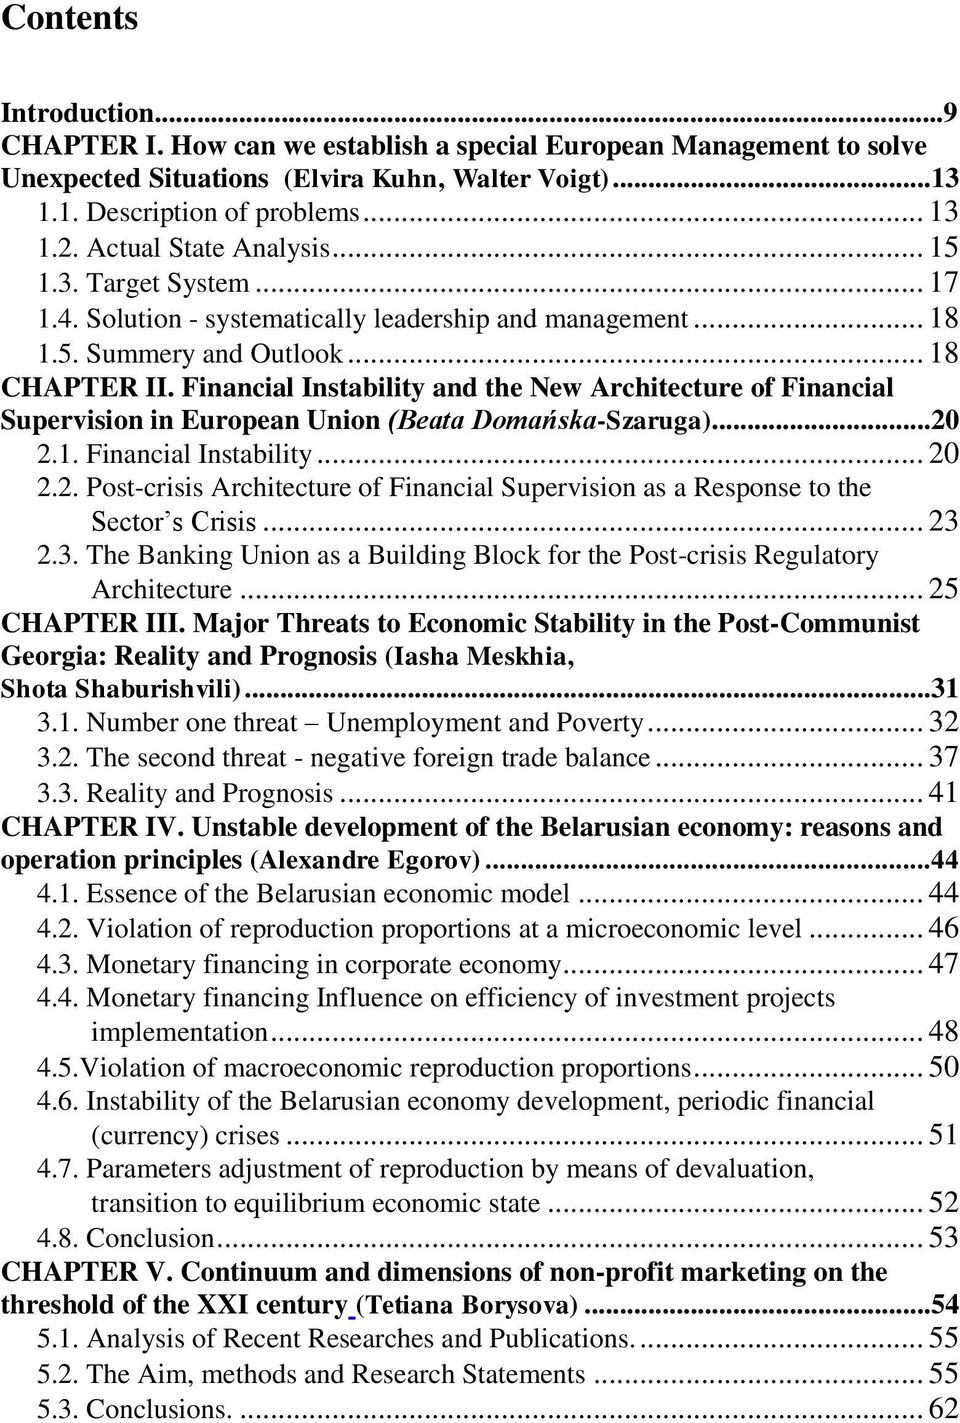 Financial Instability and the New Architecture of Financial Supervision in European Union (Beata Domańska-Szaruga)... 20